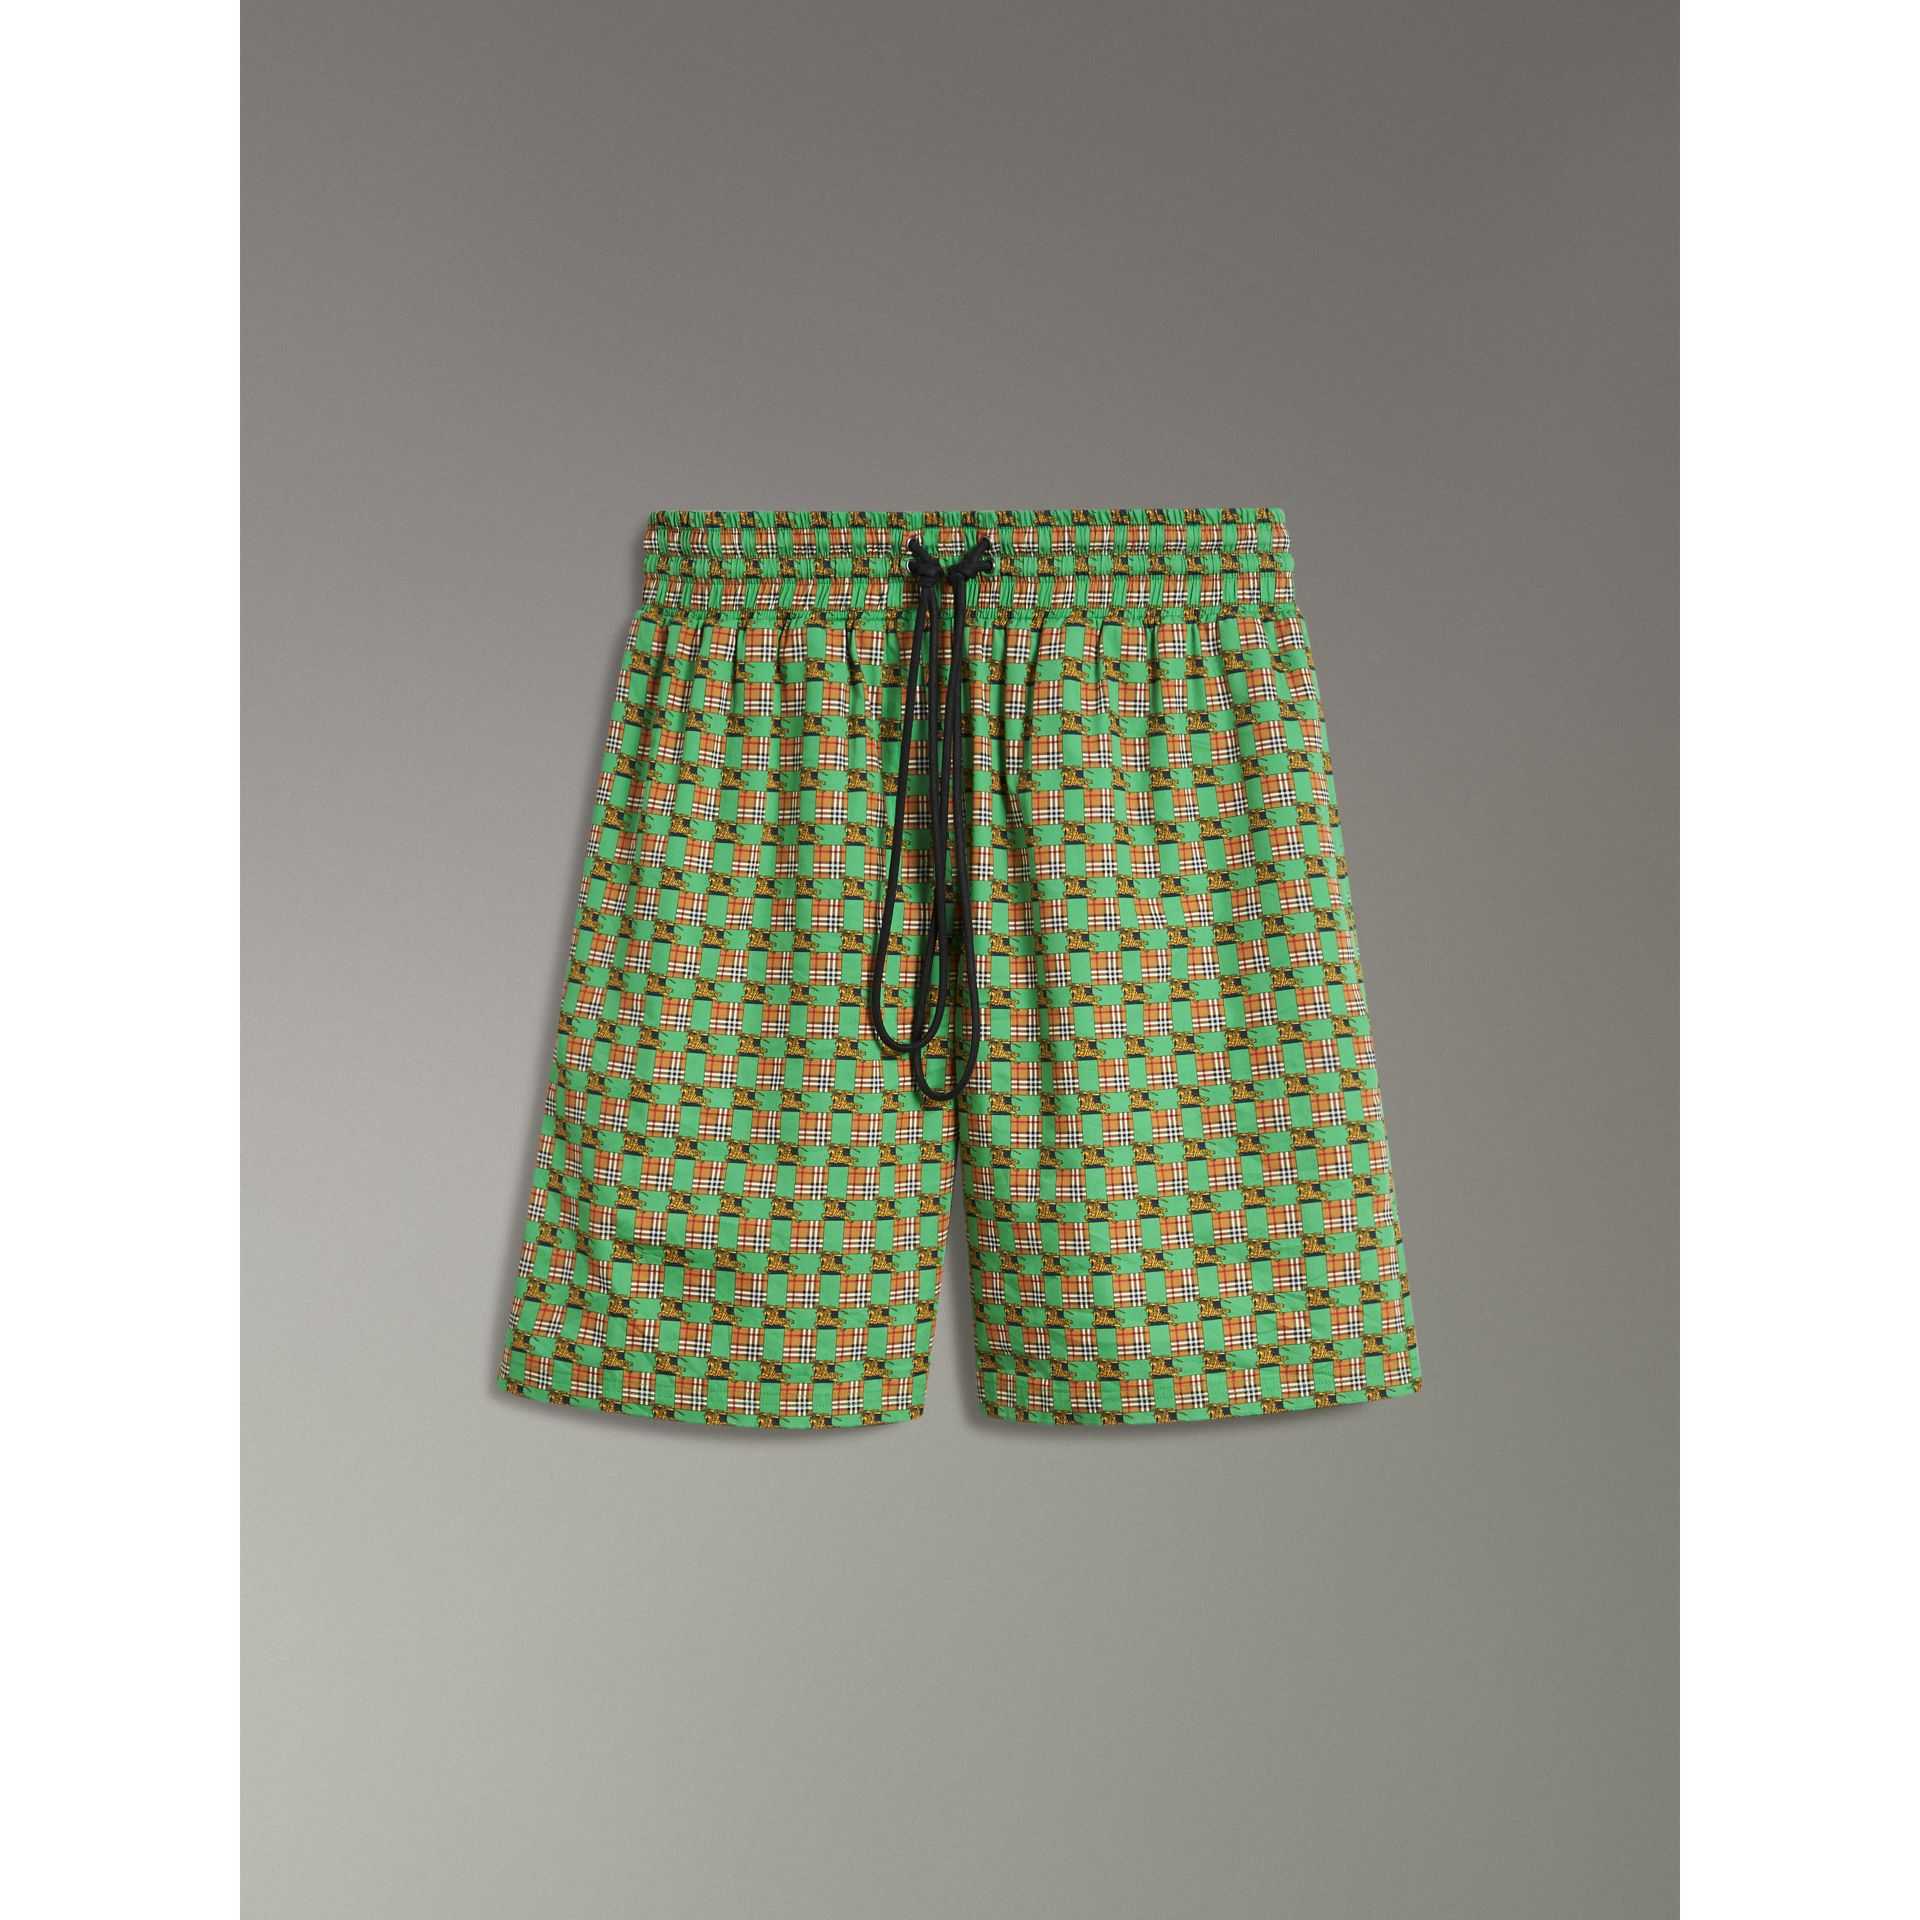 Tiled Archive Print Cotton Drawcord Shorts in Dark Forest Green - Women | Burberry Canada - gallery image 3